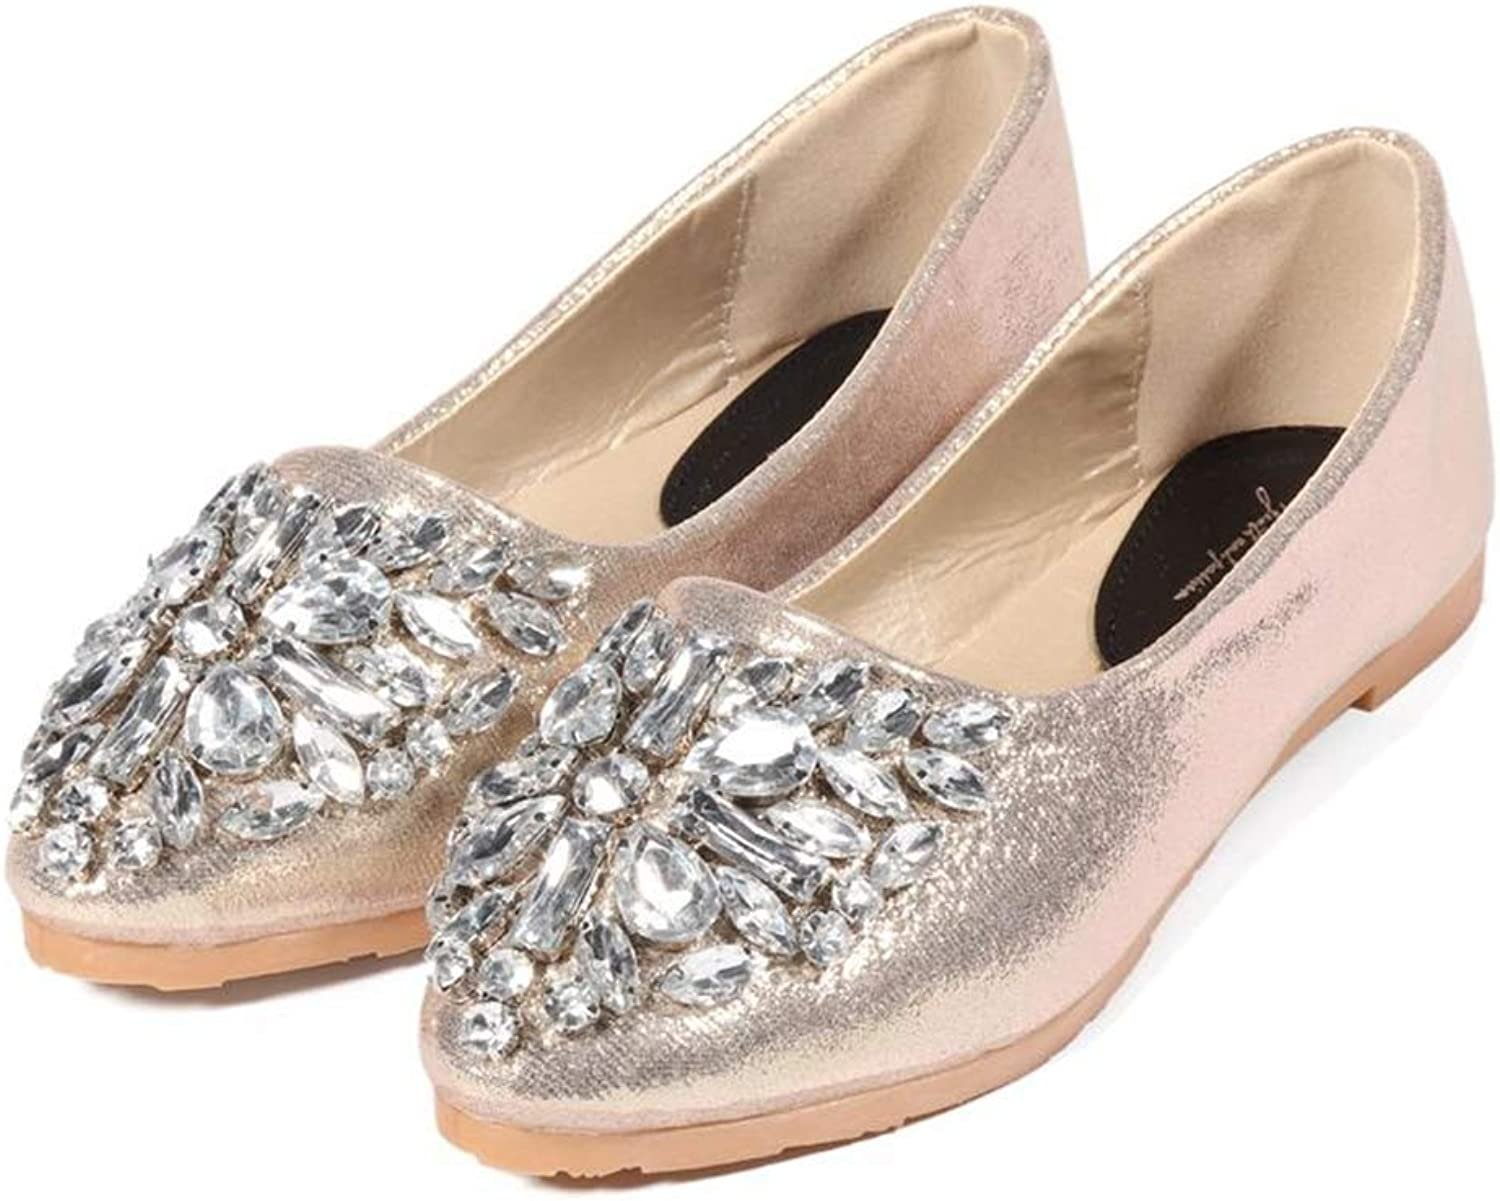 Fay Waters Women Loafers Crystal Pointed Toe Glitter Flats Casual Slip-on Dress shoes